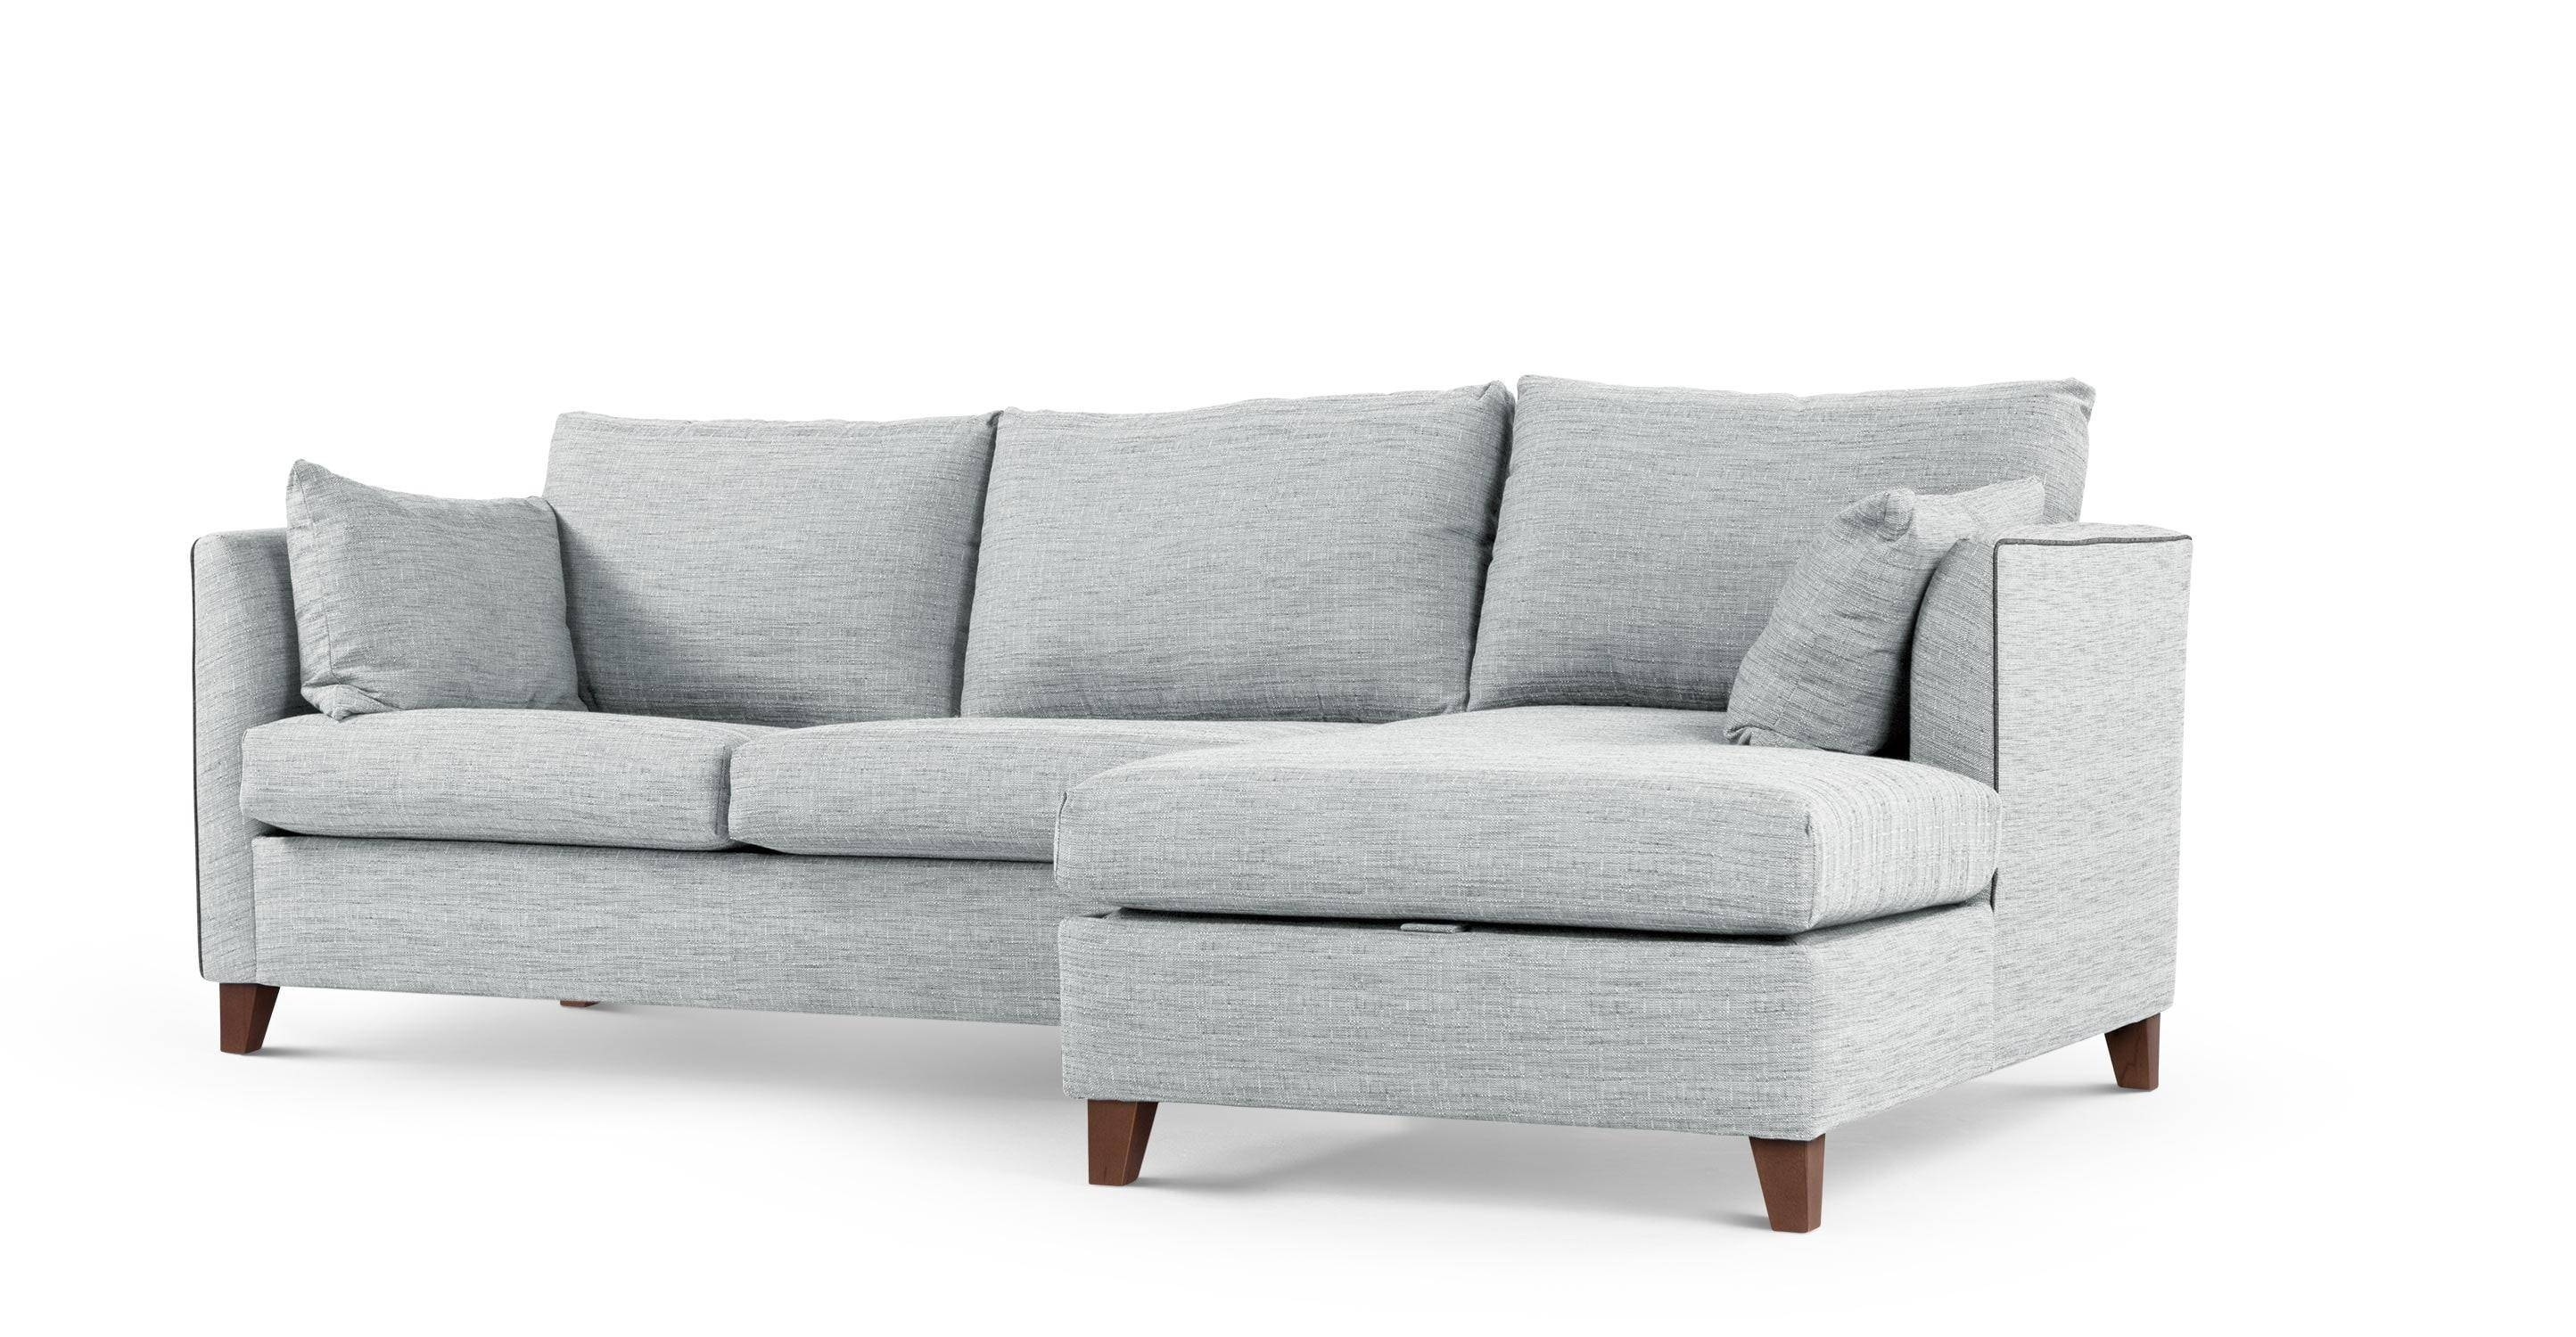 20 Best Collection Of Blue Grey Sofas | Sofa Ideas throughout Blue Grey Sofas (Image 1 of 15)